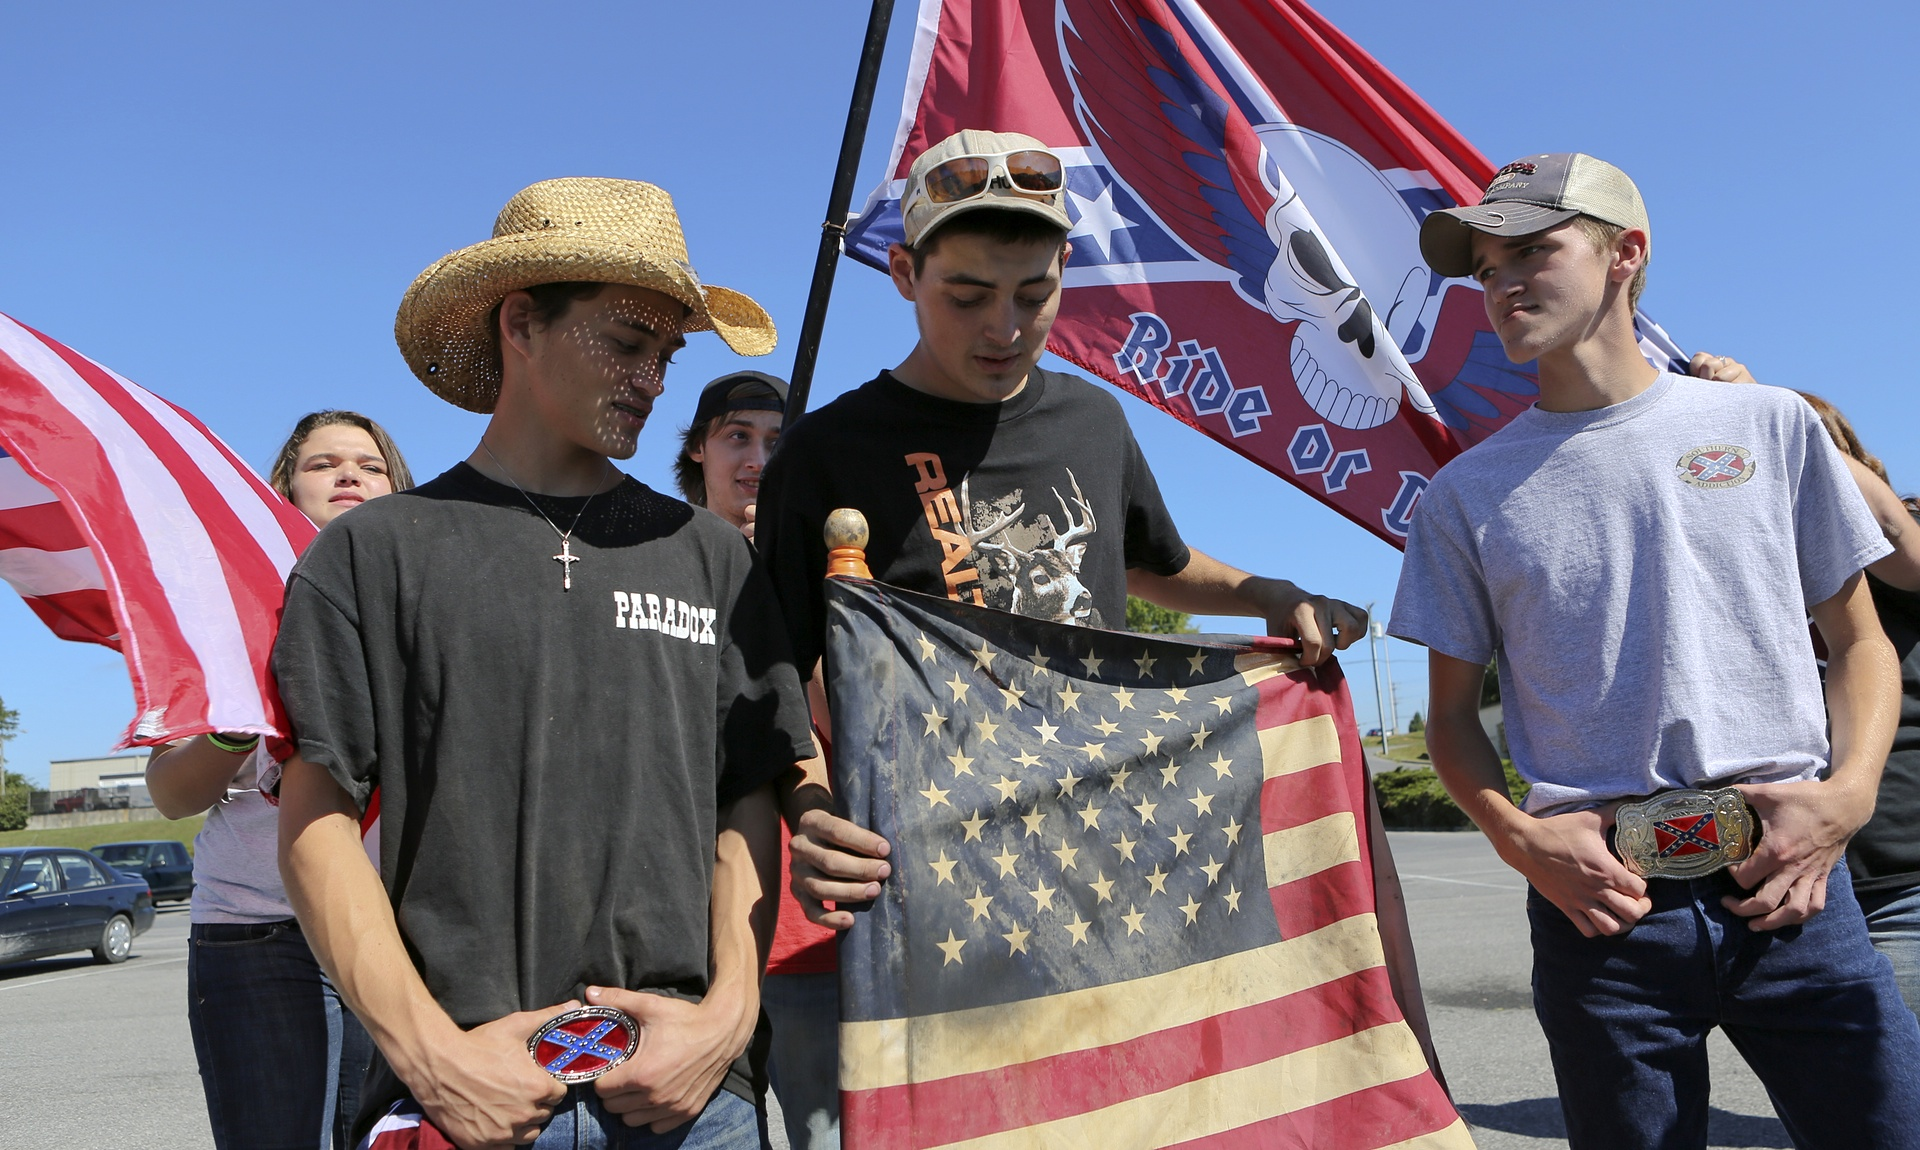 High School Students\' Protest over Confederate Flag Ban Shows ...